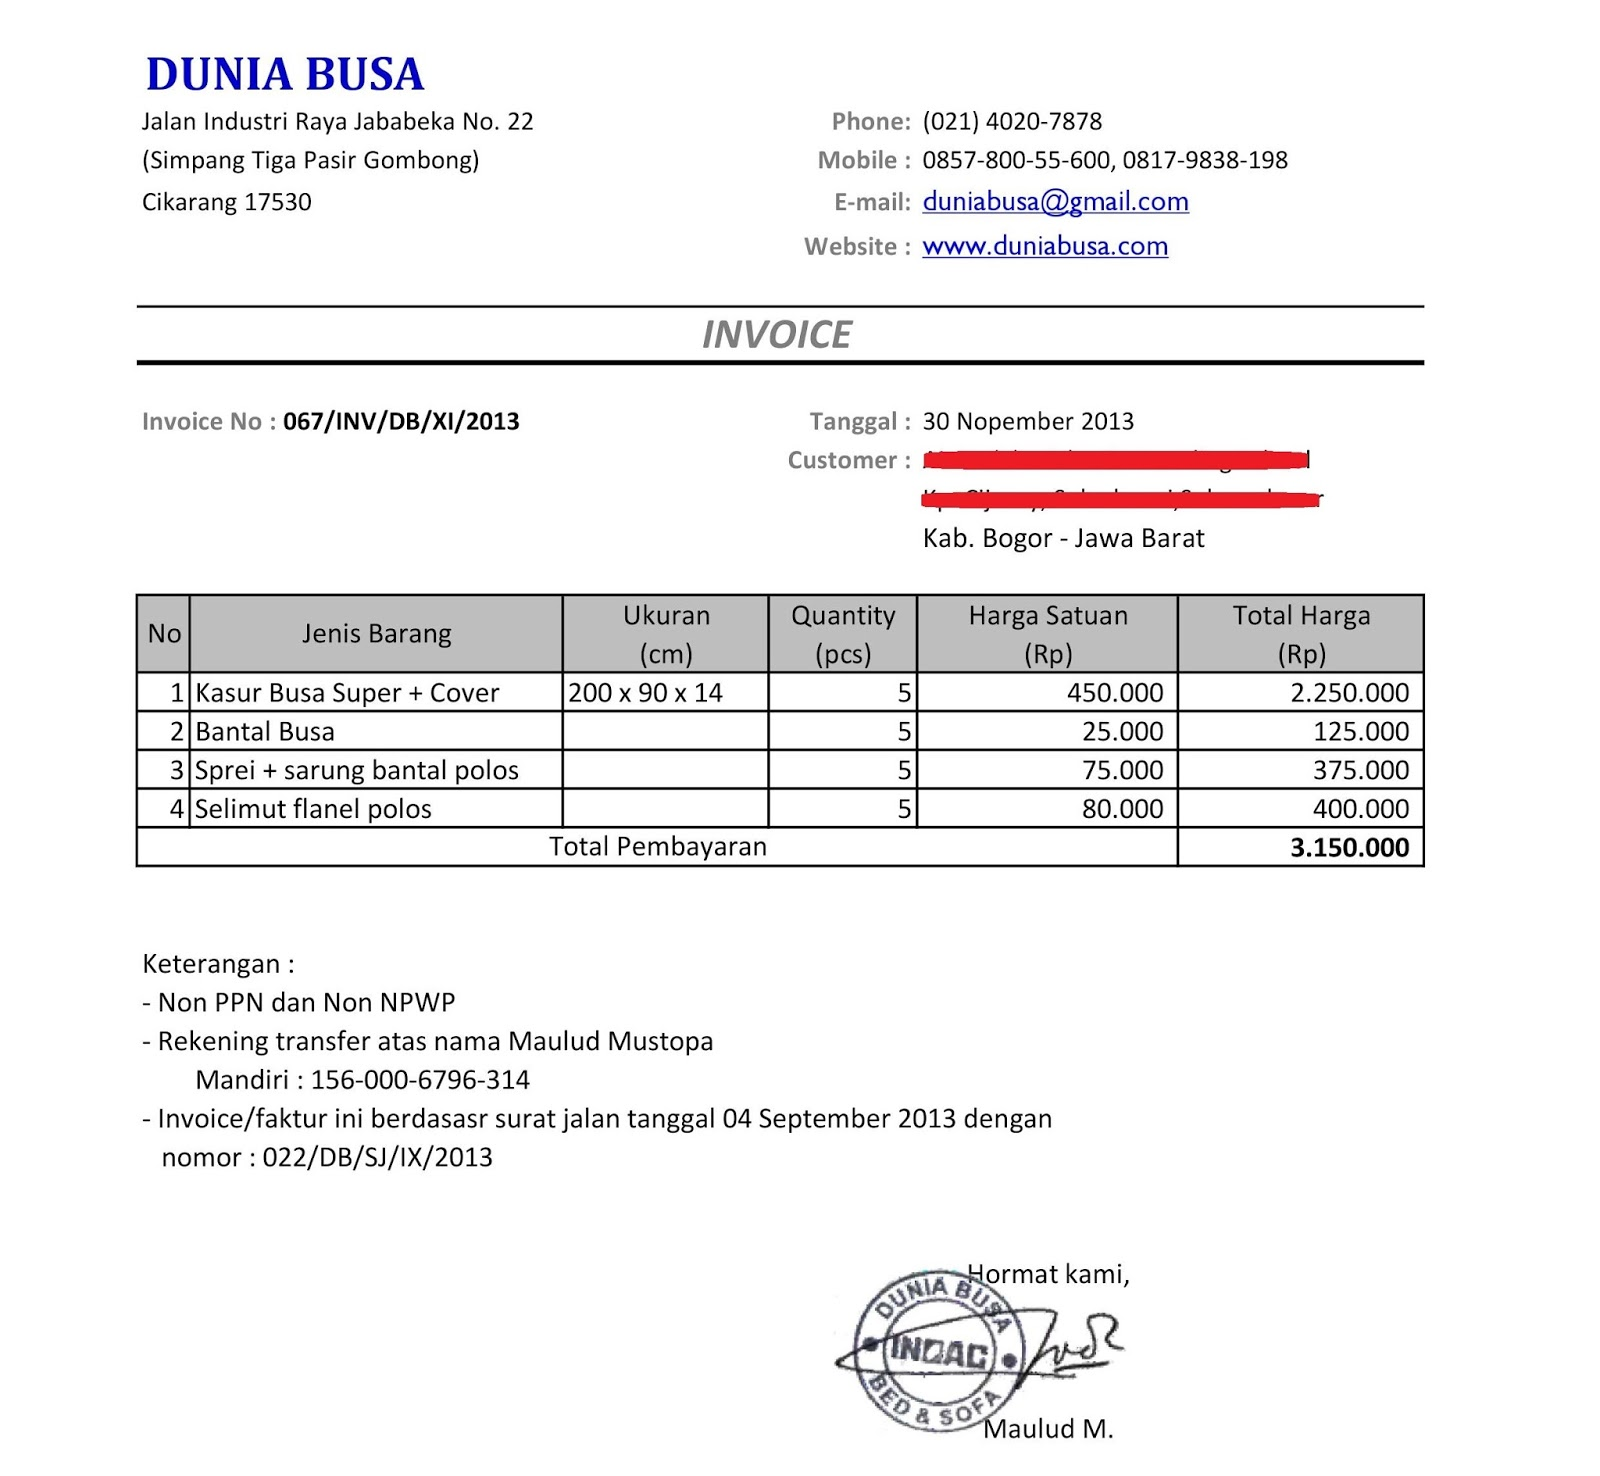 Carterusaus  Unusual Free Invoice Online  Create Invoice Online  Invoice Template  With Foxy Contoh Format Invoice Atau Surat Tagihan  Brankas Arsip  Free Invoice Online With Divine Dealer Invoice Also Contractor Invoice In Addition Quickbooks Invoice And Free Online Invoice As Well As Invoice Financing Additionally Adp Open Invoice Login From Sklepco With Carterusaus  Foxy Free Invoice Online  Create Invoice Online  Invoice Template  With Divine Contoh Format Invoice Atau Surat Tagihan  Brankas Arsip  Free Invoice Online And Unusual Dealer Invoice Also Contractor Invoice In Addition Quickbooks Invoice From Sklepco